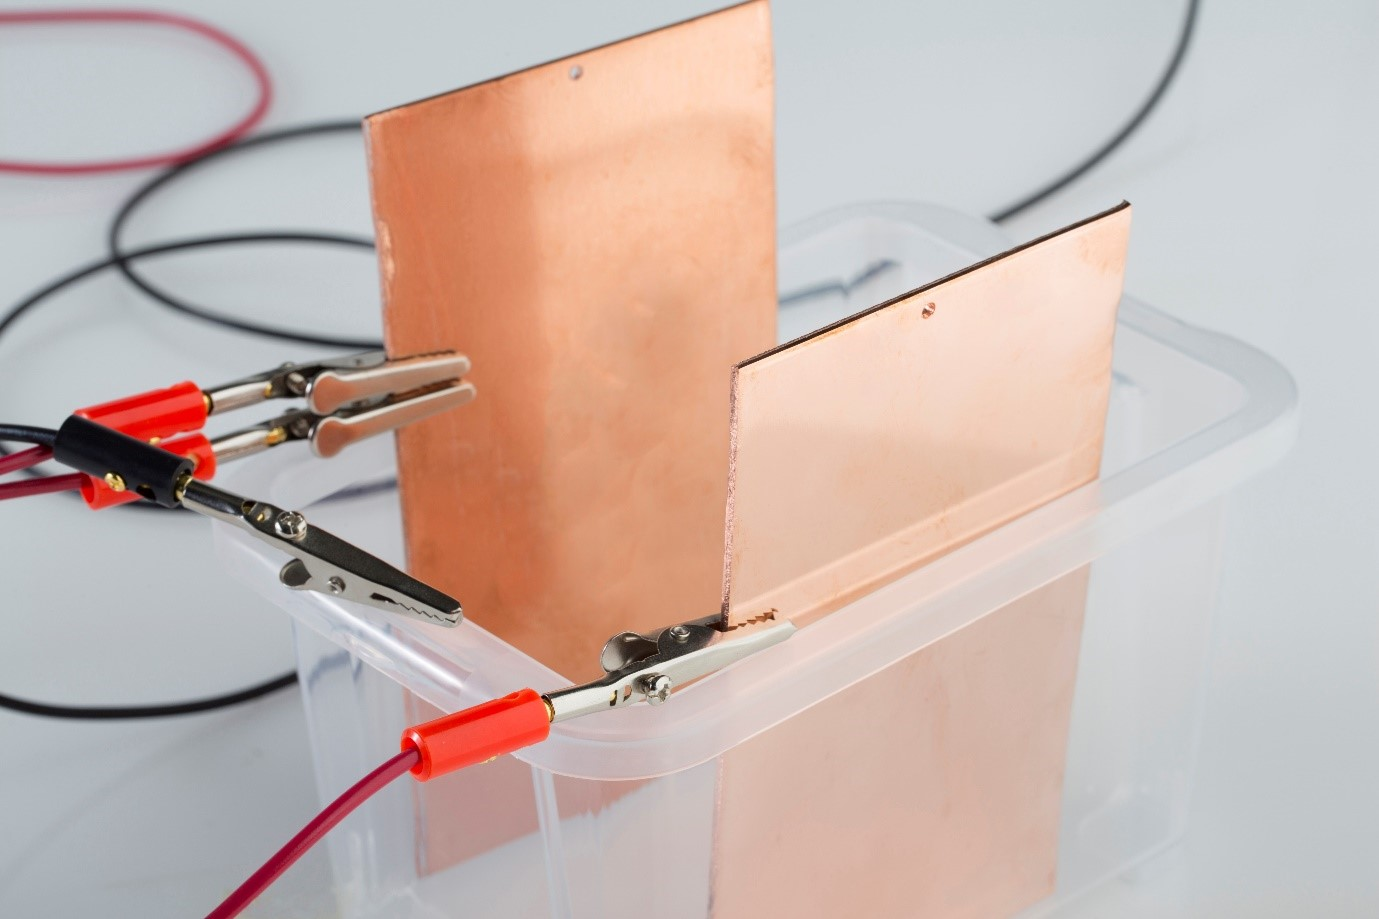 Copper tank conversion kit for electroplating